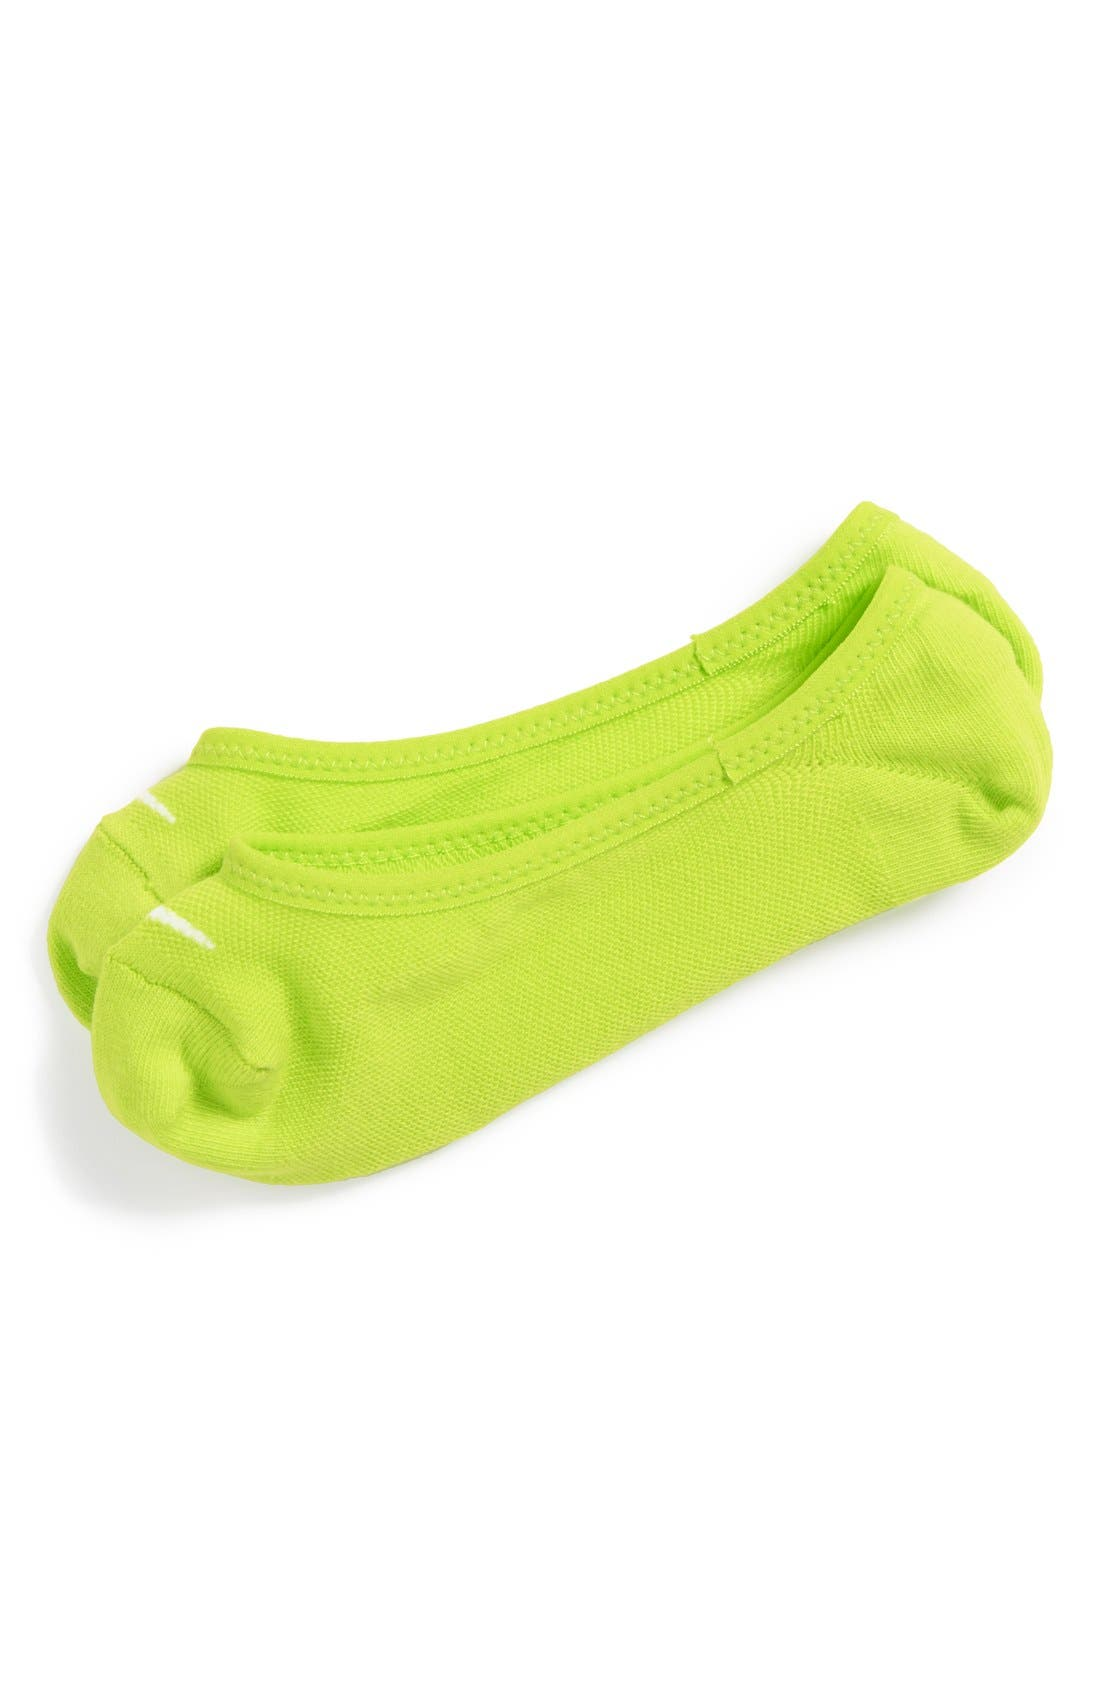 Alternate Image 1 Selected - Nike 'Studio' No-Show Socks (Women)